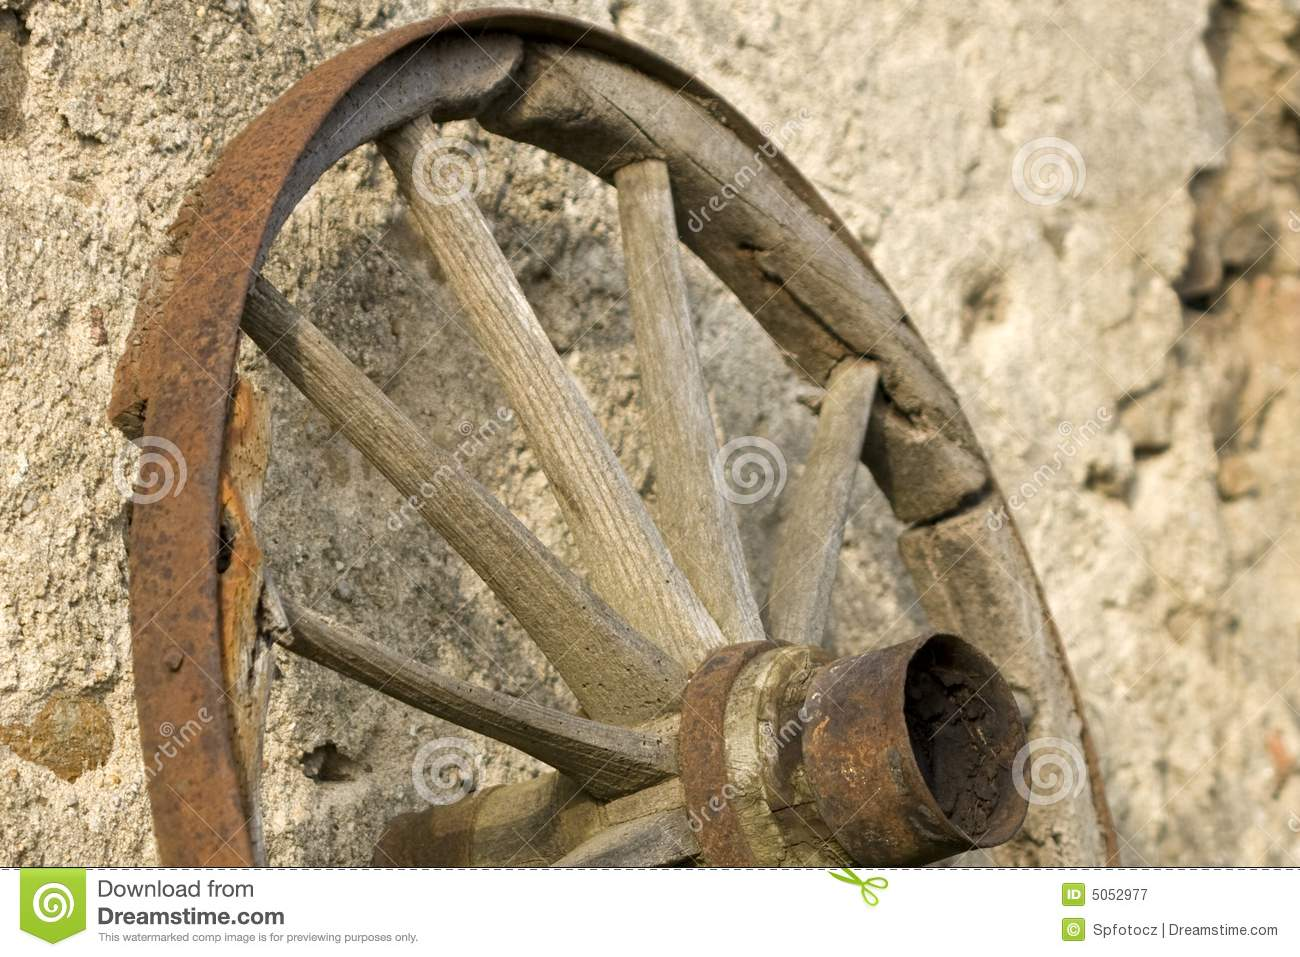 Old wooden wheel.